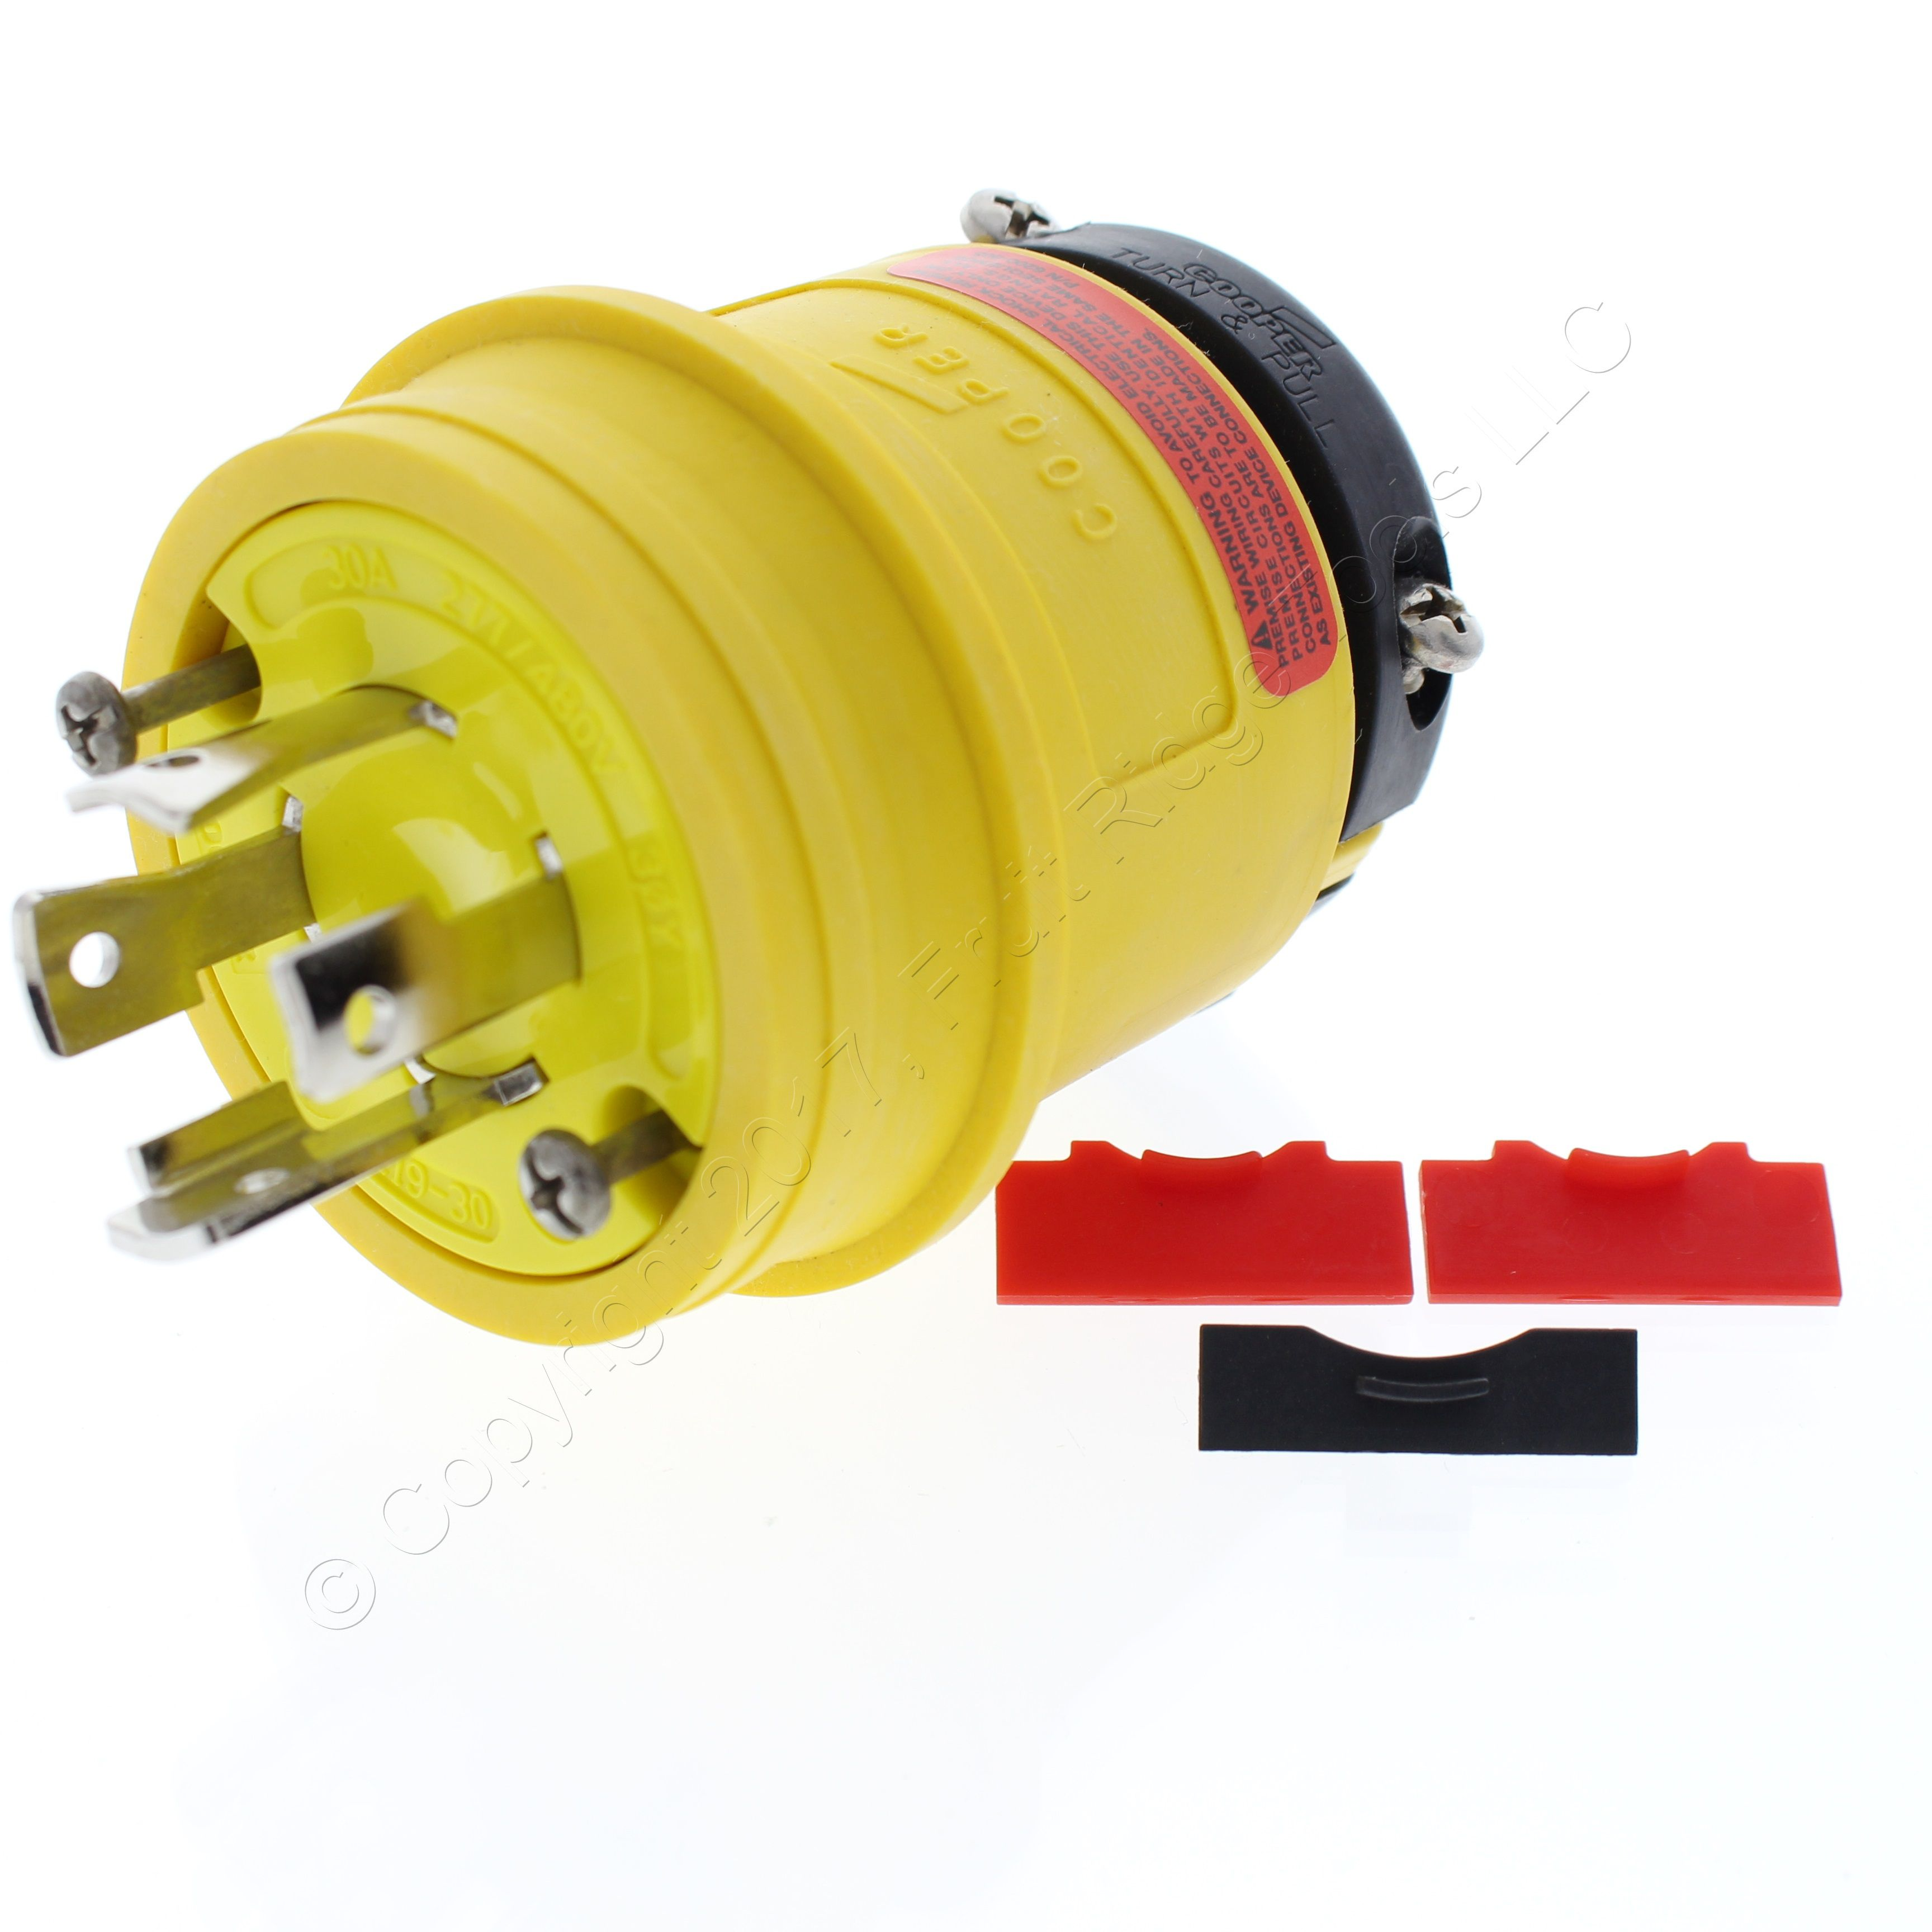 Cooper Watertight 30a 277 480v 3 Phase 4 Pole Yellow Locking Wire Wiring Connector 1930py